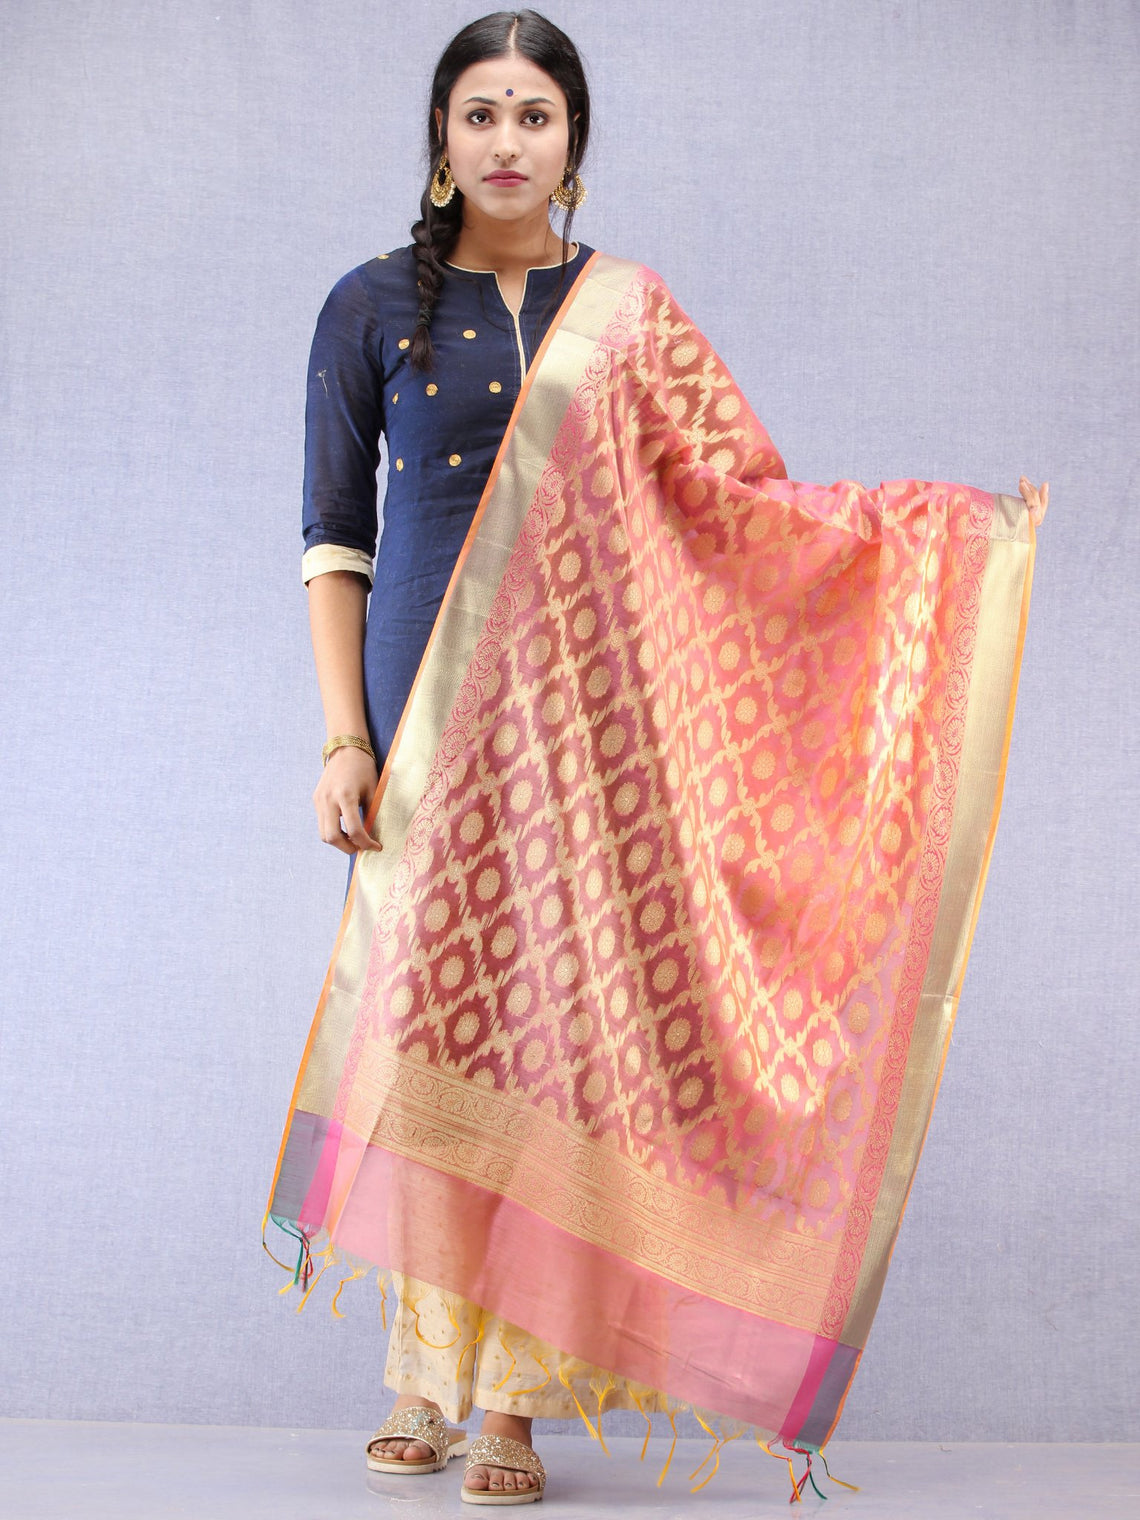 Banarasi Chanderi Dupatta With Resham Work - Pink & Gold - D04170797